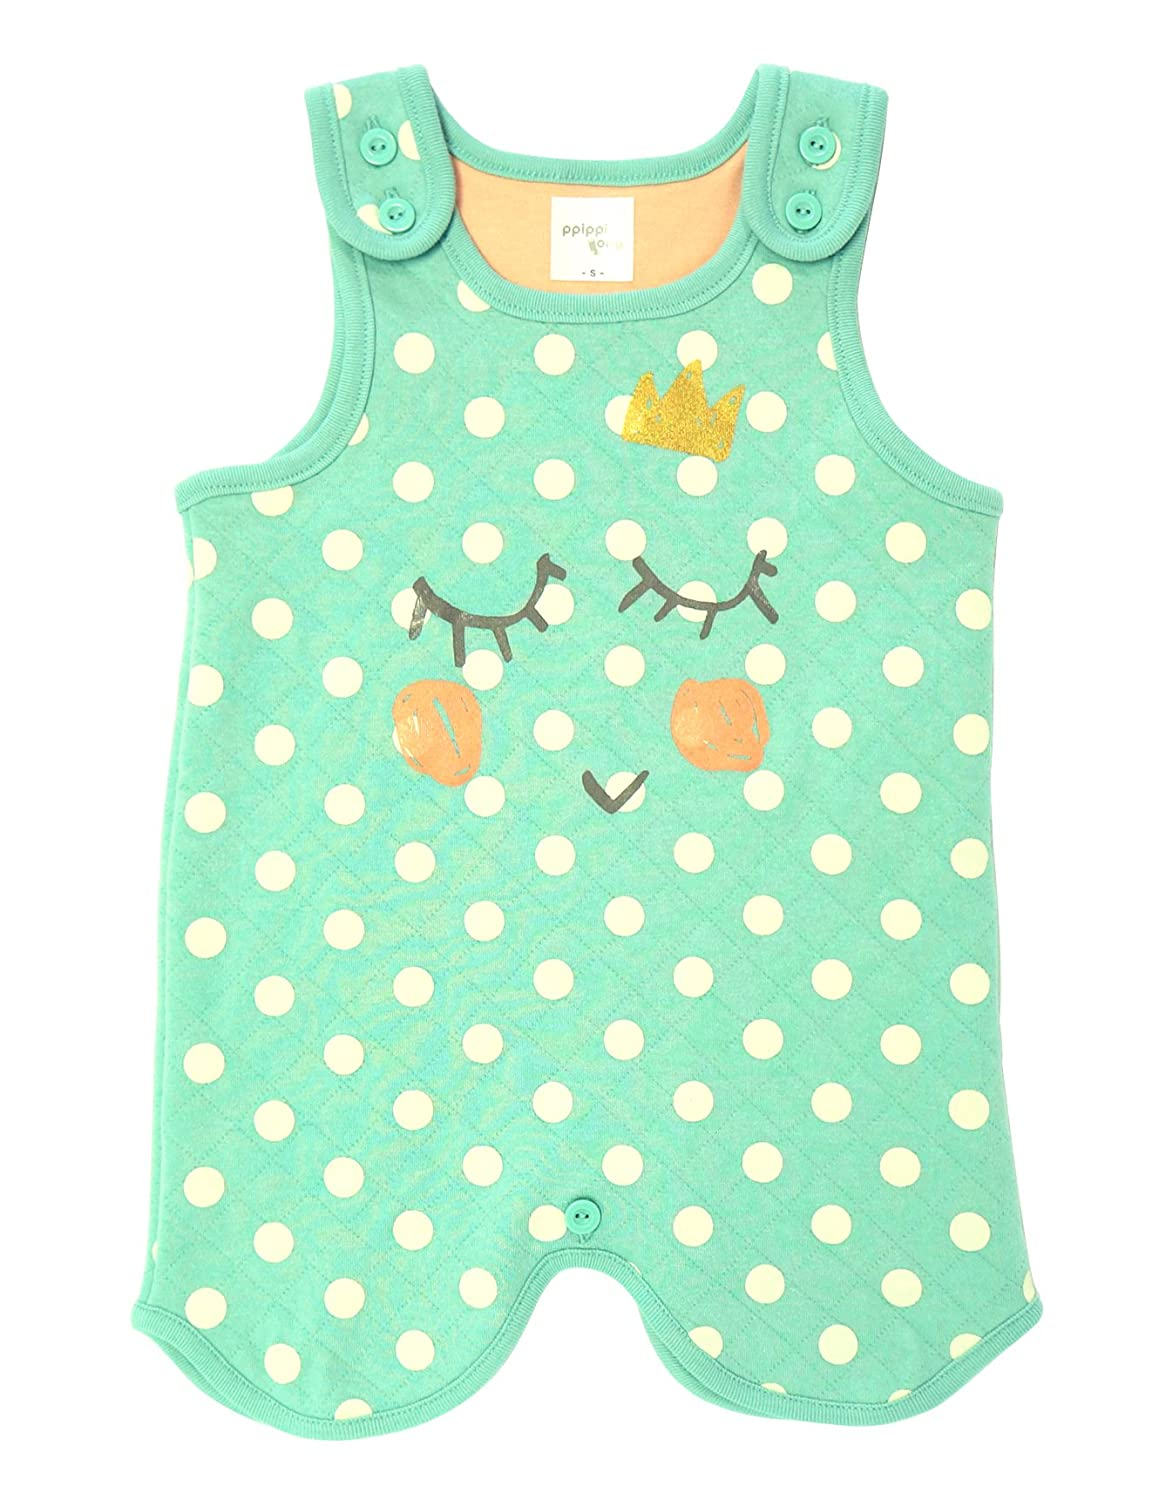 Clothing, Shoes & Accessories Boys' Clothing (newborn-5t) Baby Unisex Hand Made Tie Dye Vest 0-3 Months